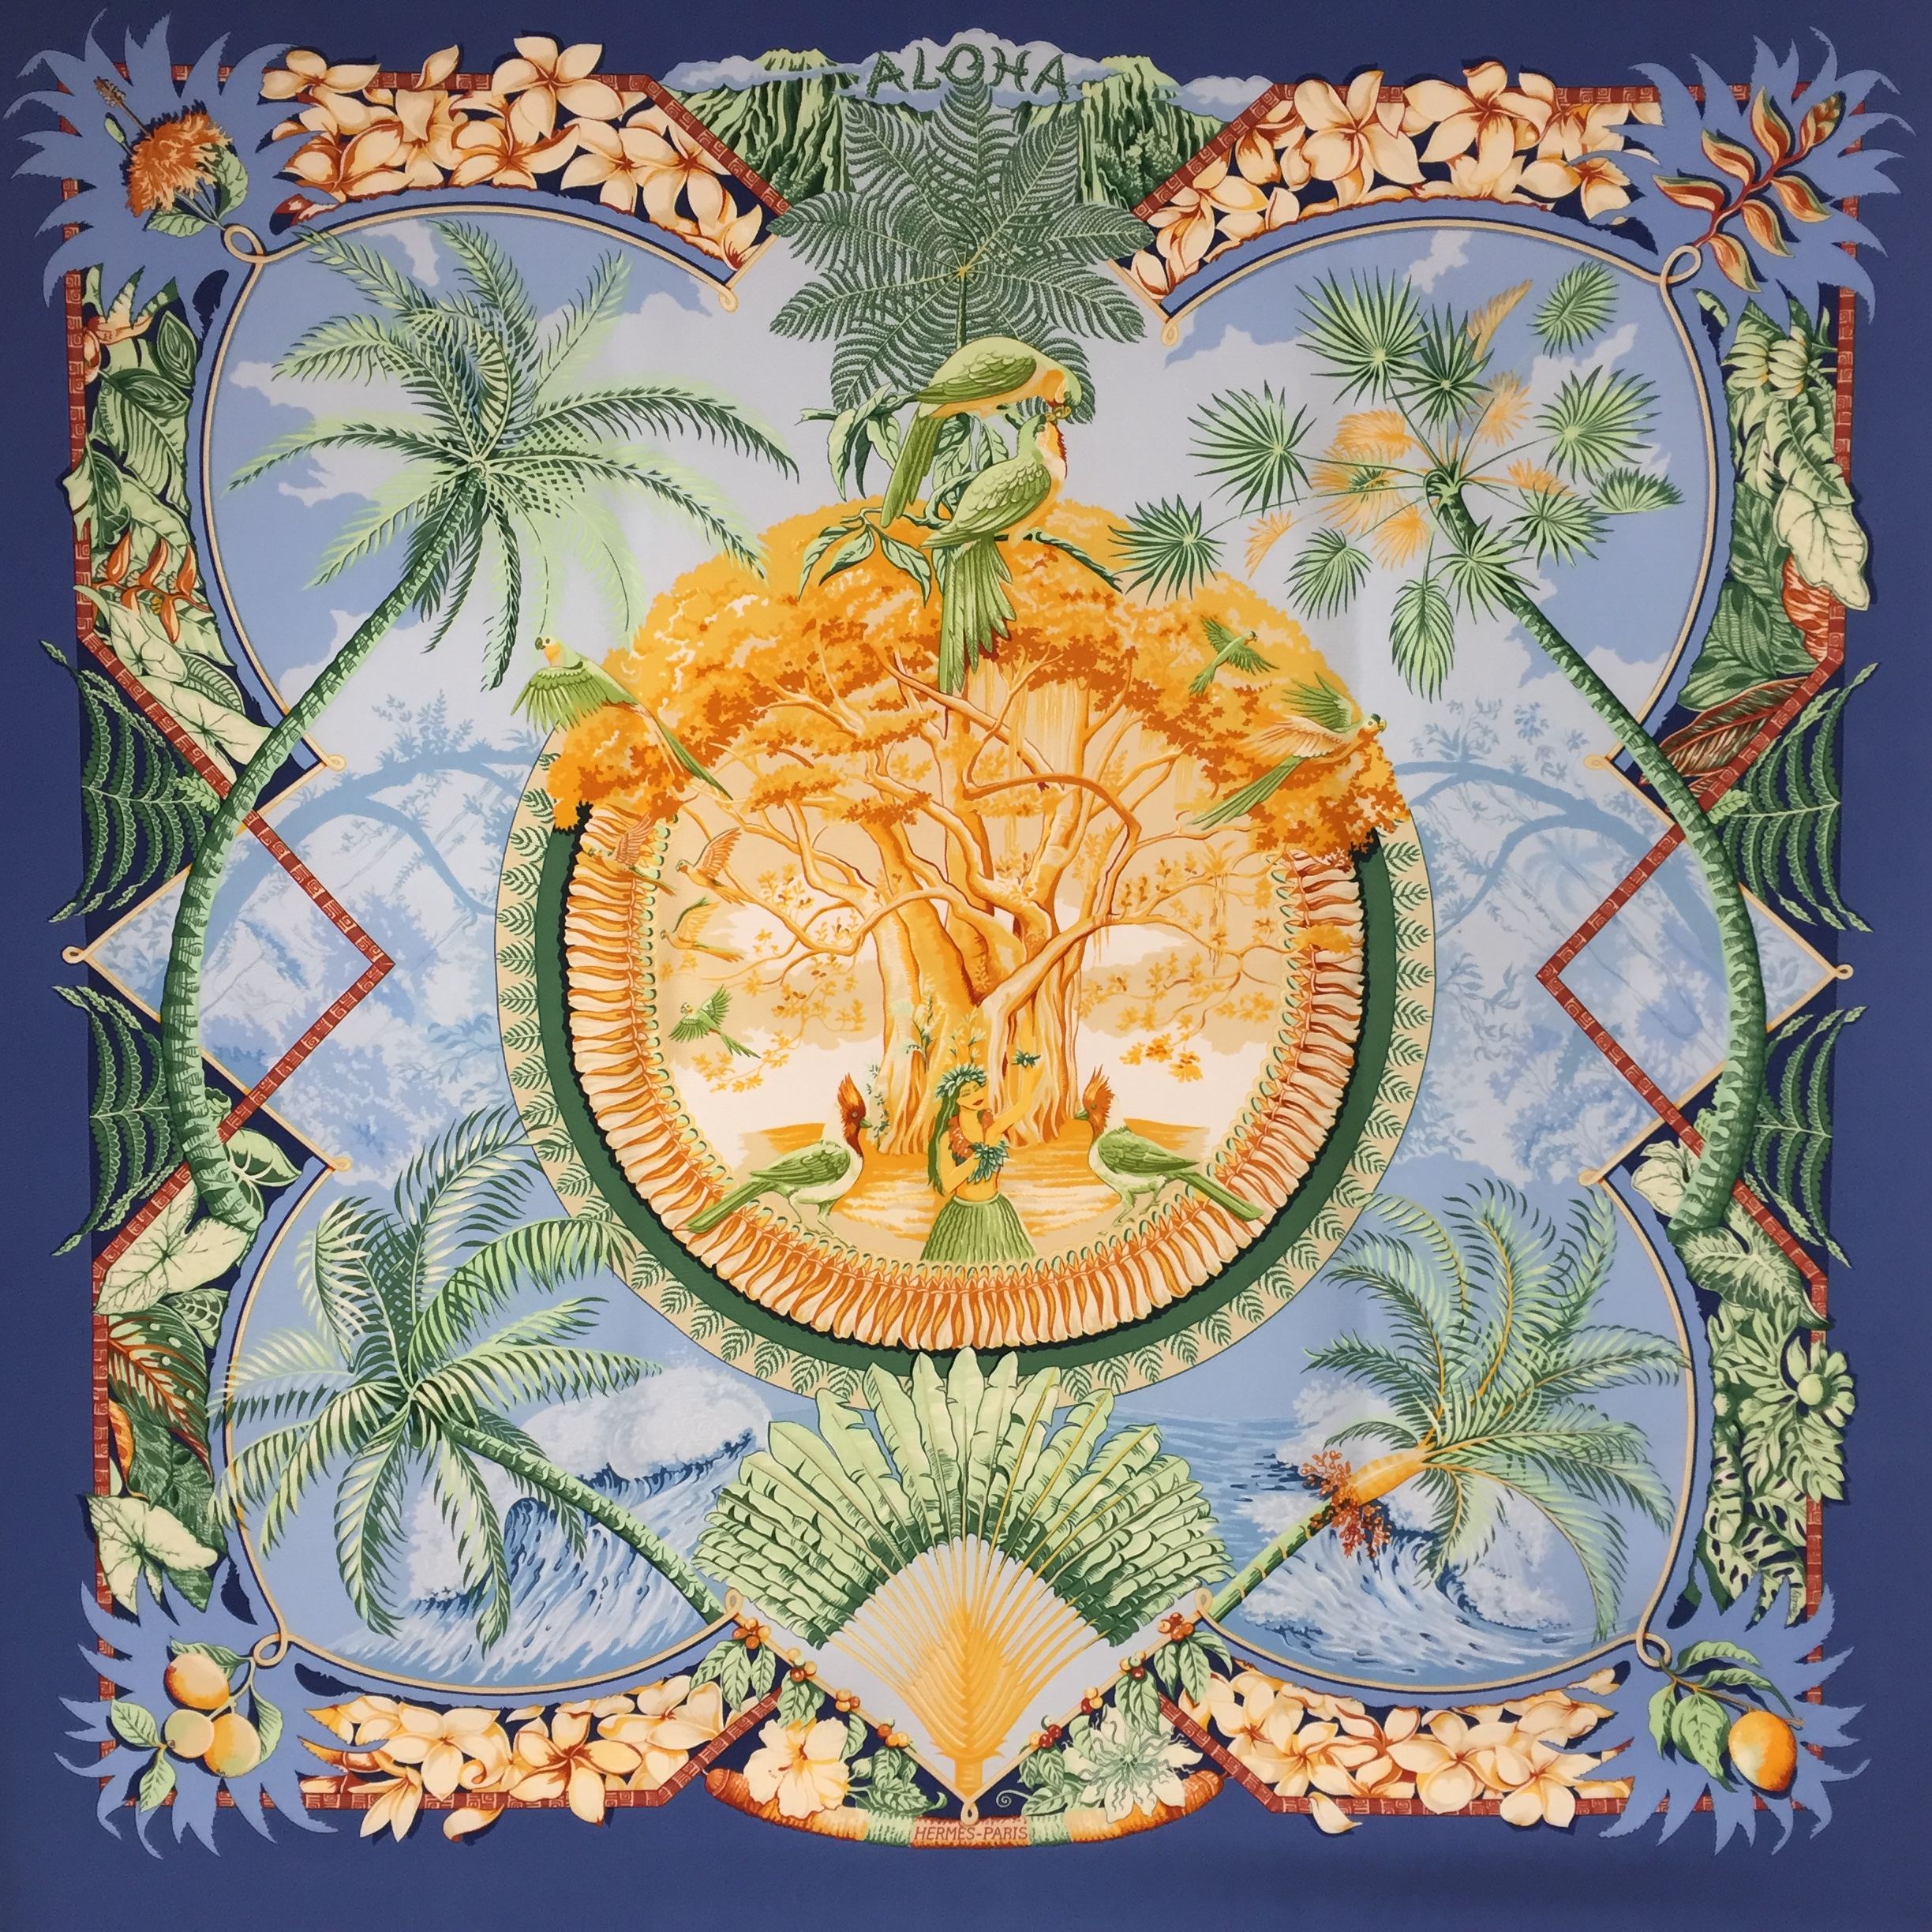 Aloha Hermes silk scarf from 2002 - Blue Colorway COMING SOON